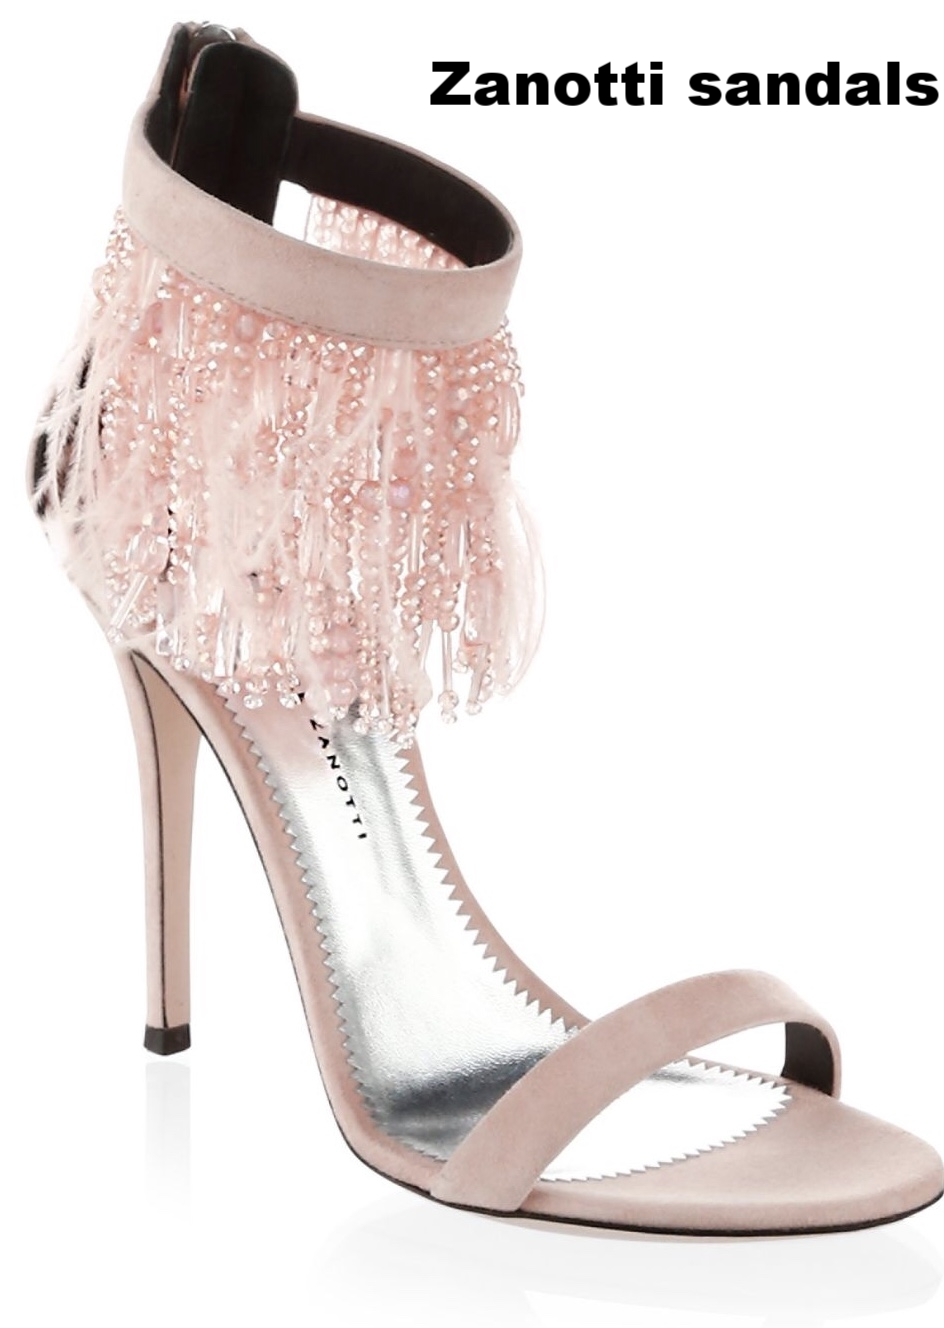 Instead of a plain white satin heel, try a soft blush color with a eye-popping embellishment.